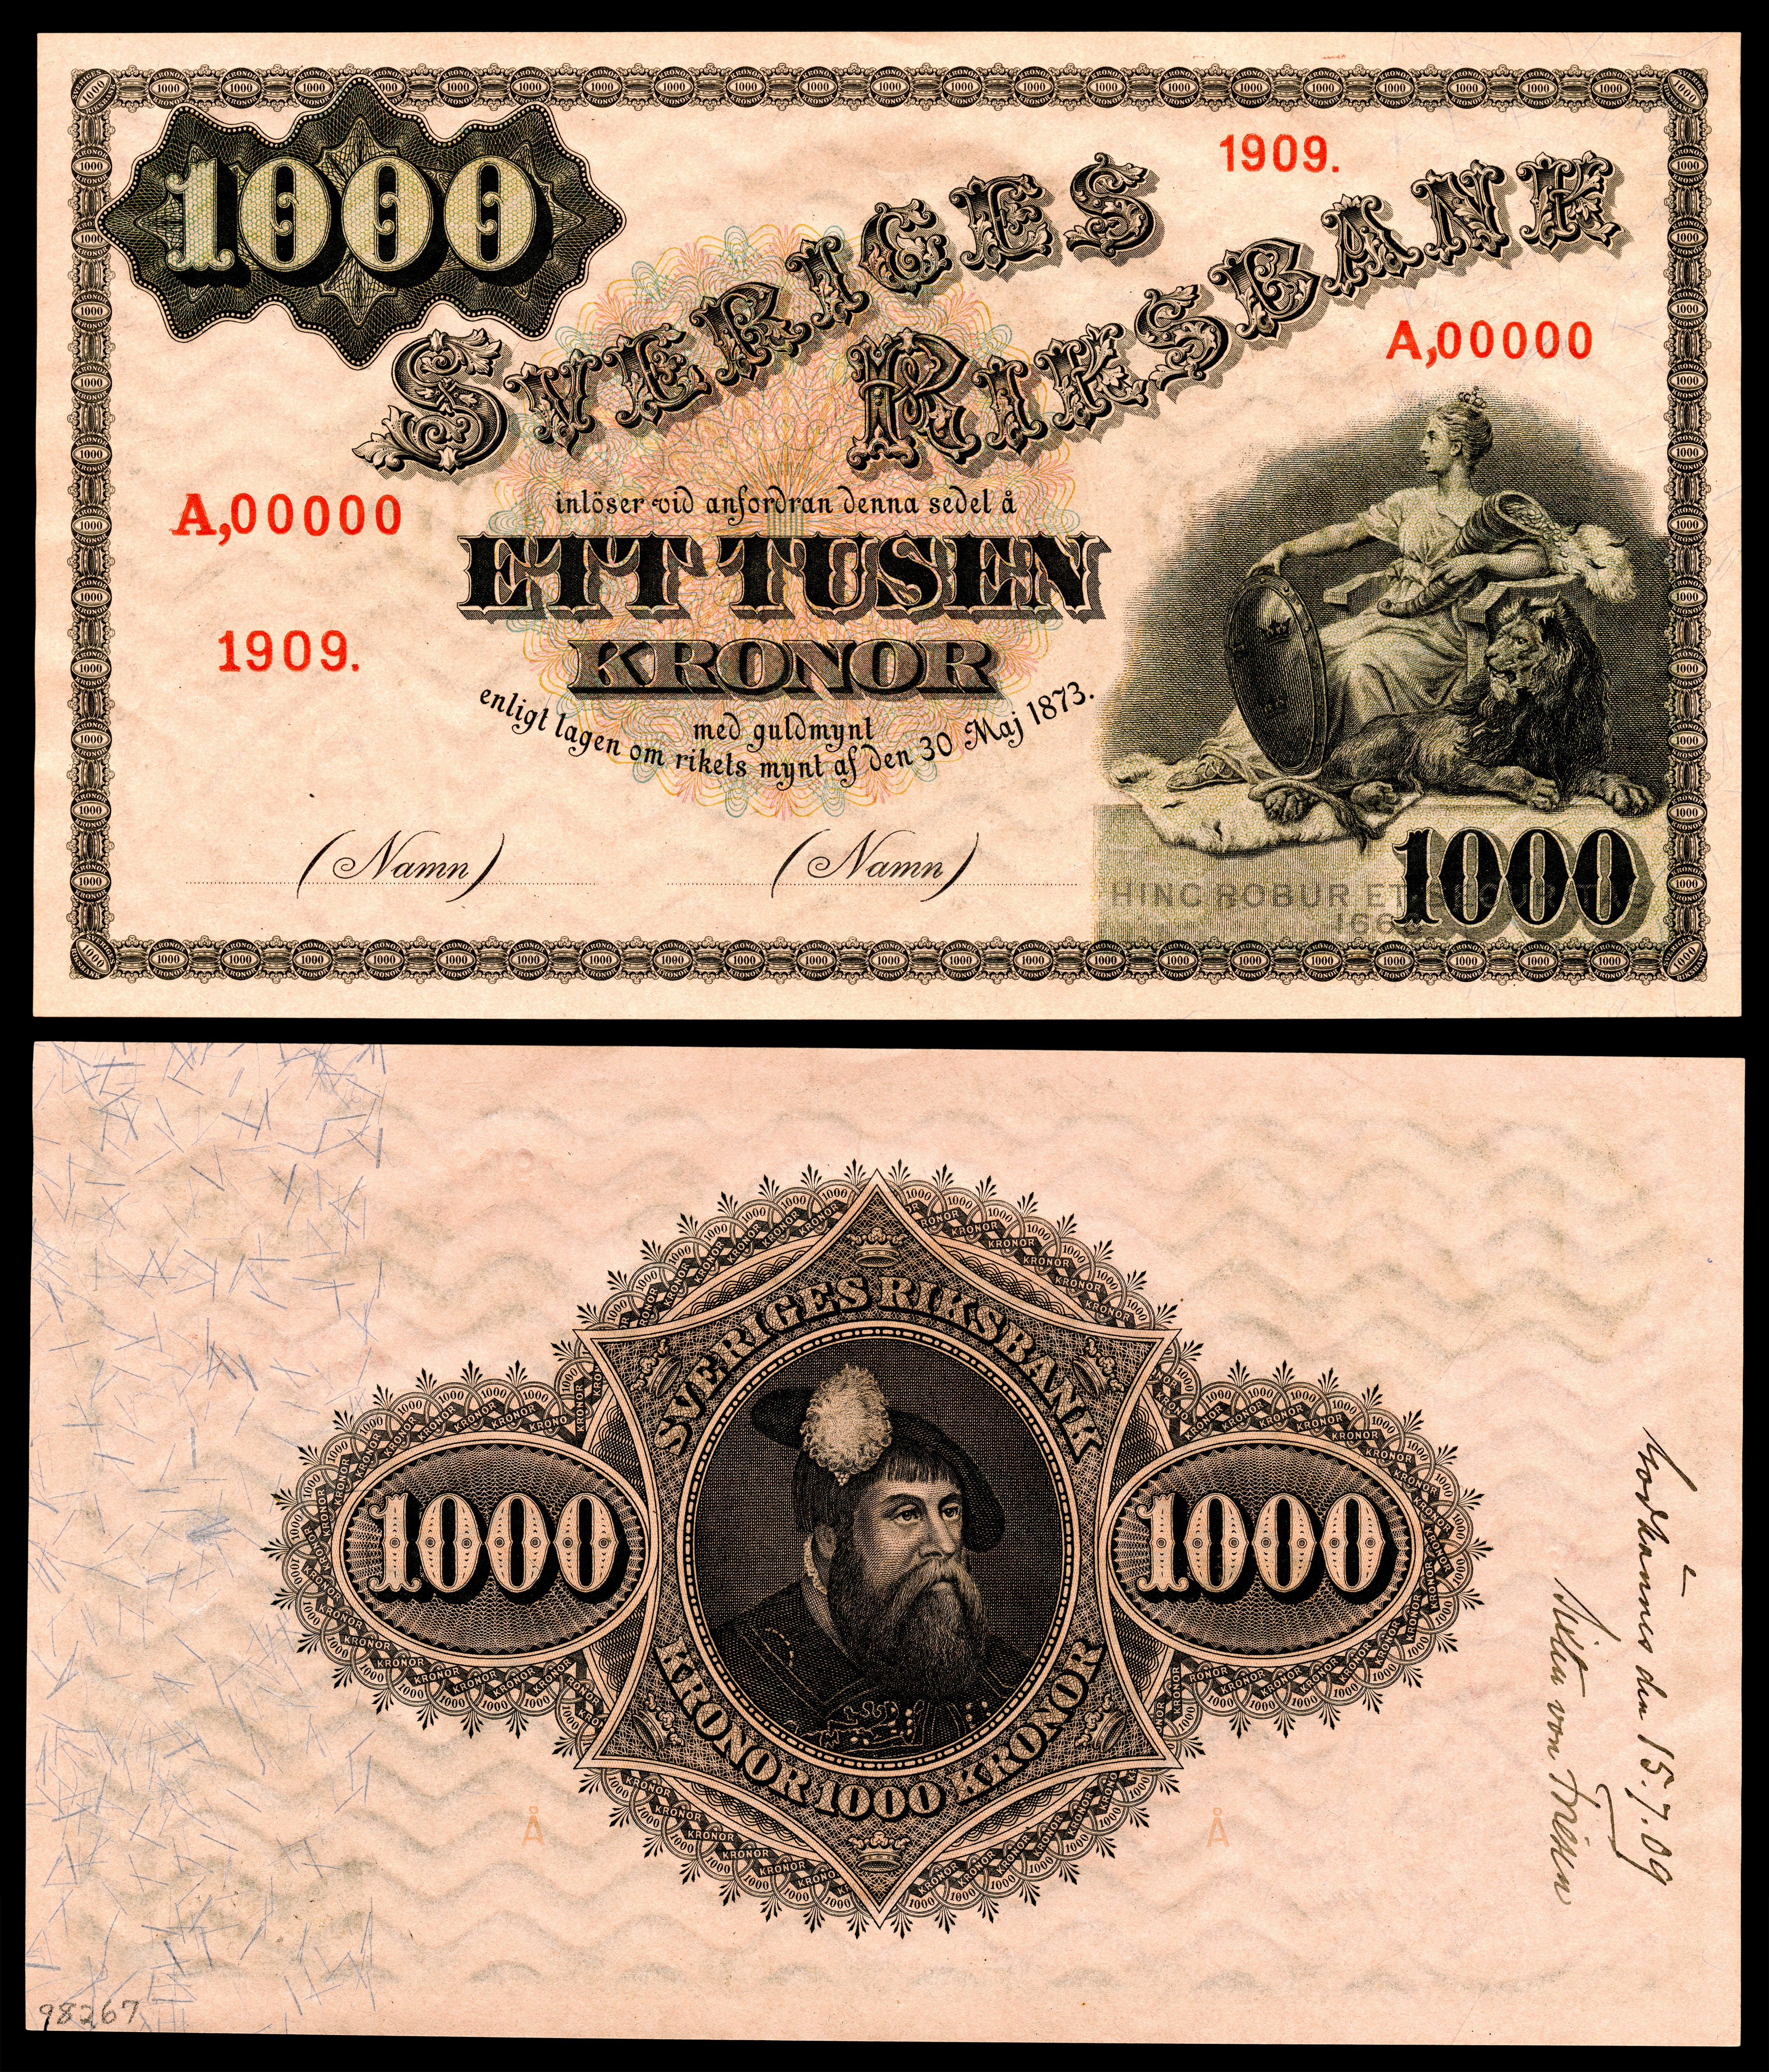 1909 Specimen With Roval On The Reverse Of A Sveriges Riksbank 1 000 Krona